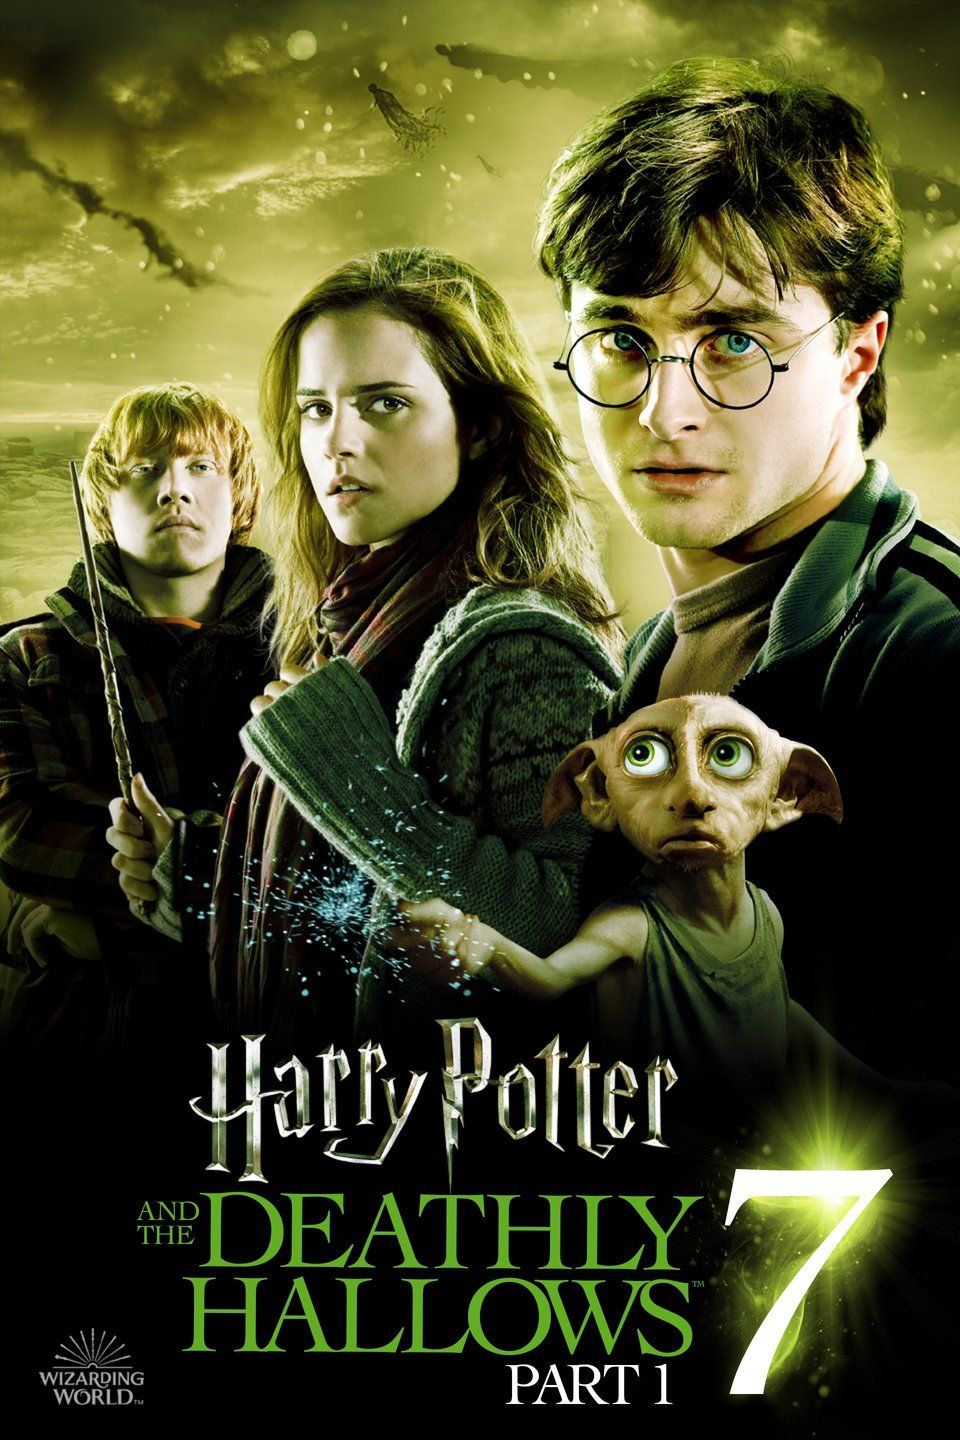 Harry Potter And The Deathly Hallows Part 1 Google Search Harry Potter Harry Potter Filmleri Harry Potter Sanati